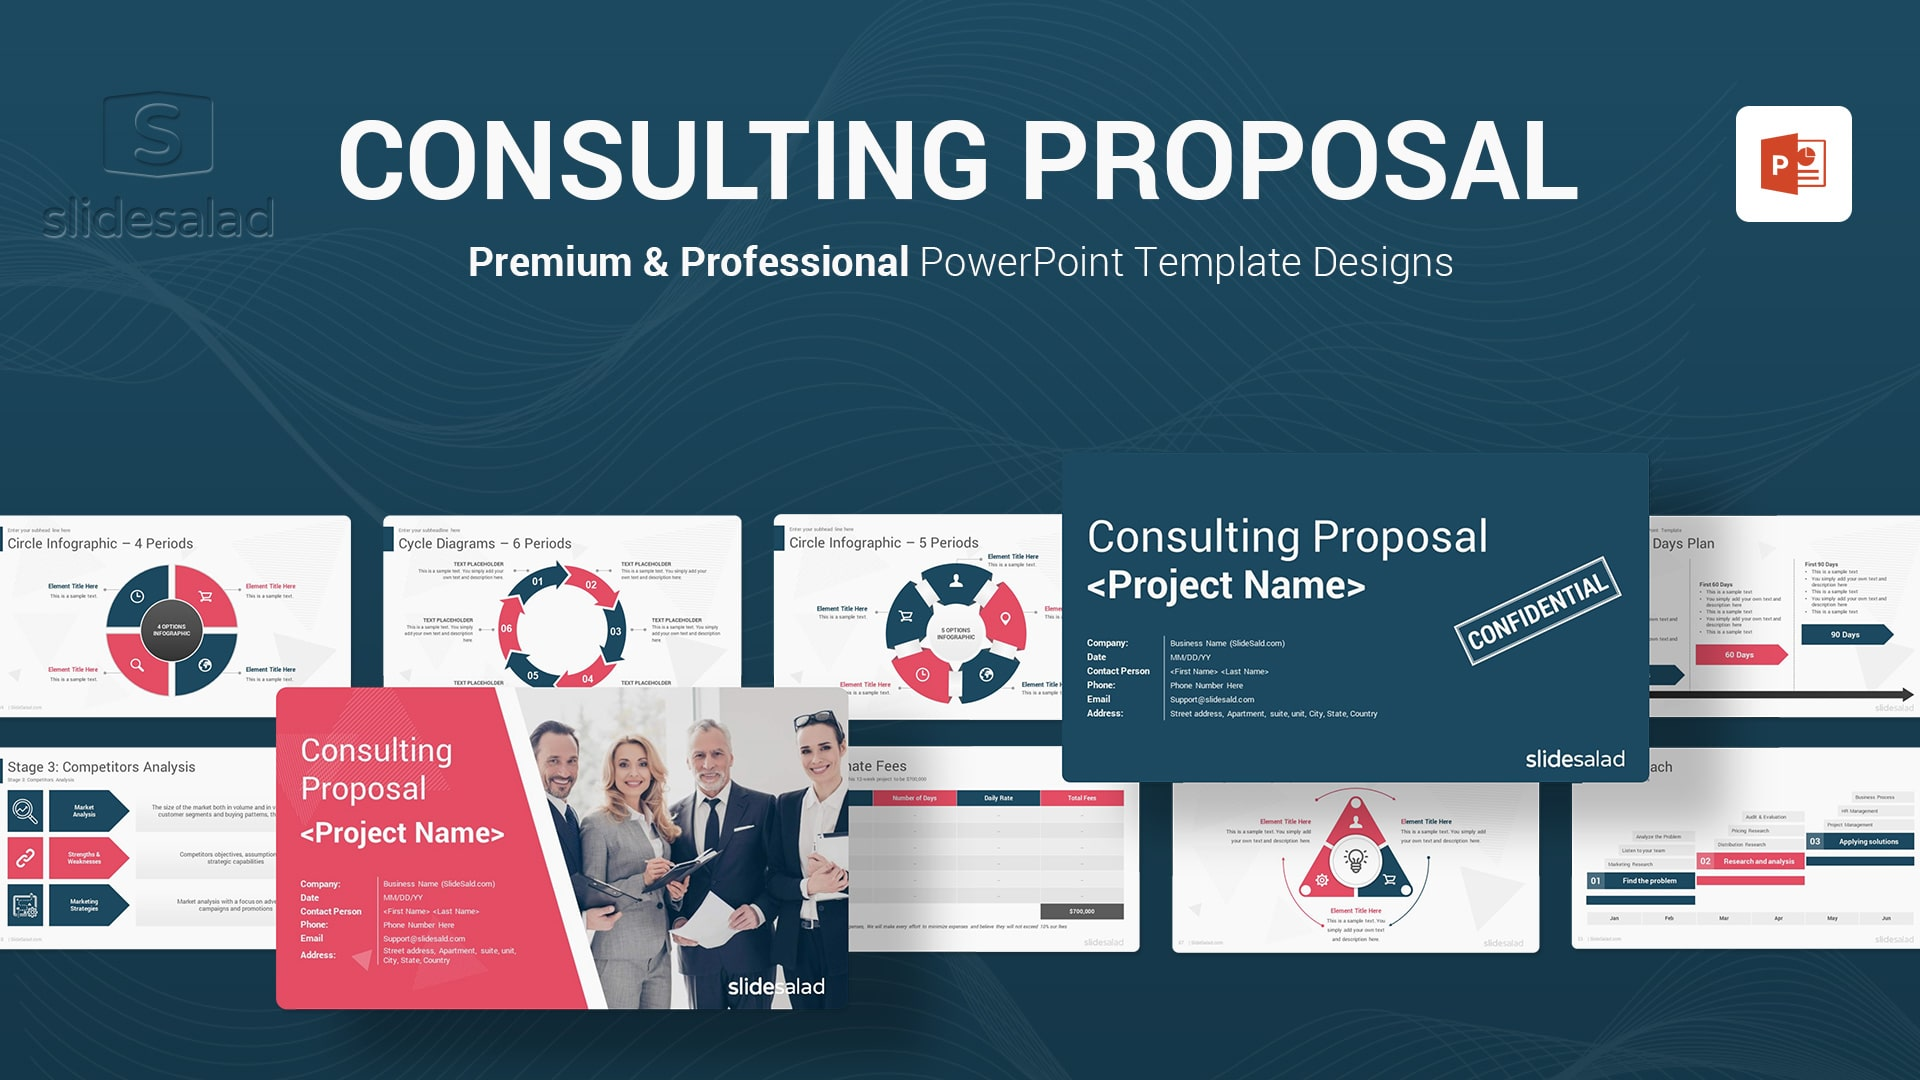 Consulting Proposal PowerPoint Template - Animated PowerPoint Template for Business Consultations